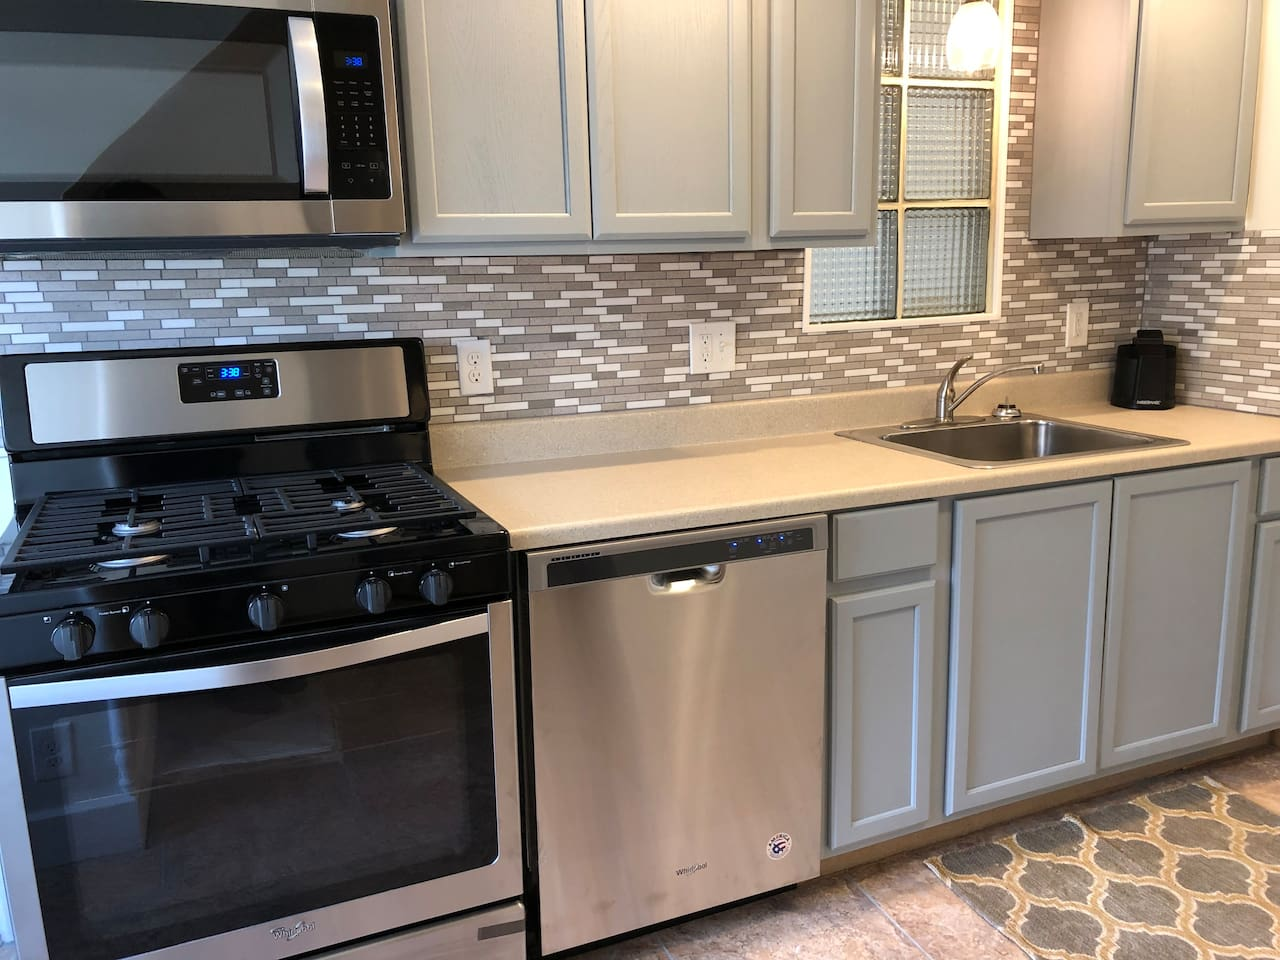 Newly updated kitchen with gas stove, stainless appliances, recess lighting and dishwasher